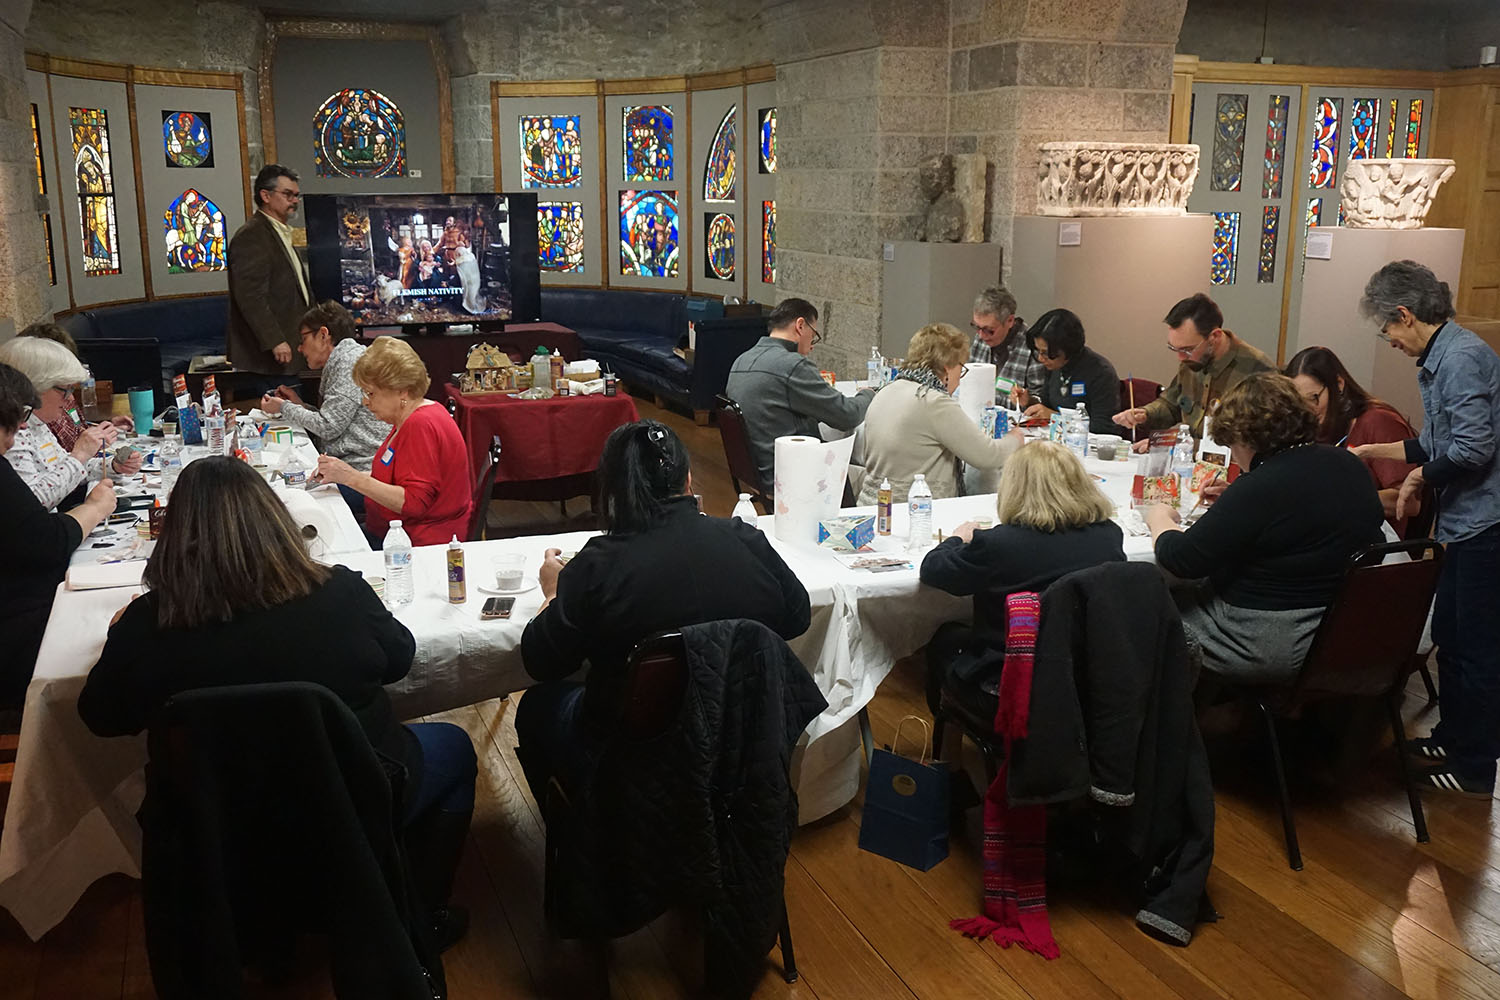 """Figure 21: A workshop being led by R. Michael Palan and Karen Loccisano in Glencairn's Medieval Gallery: """"The Art of Making Nativities."""""""